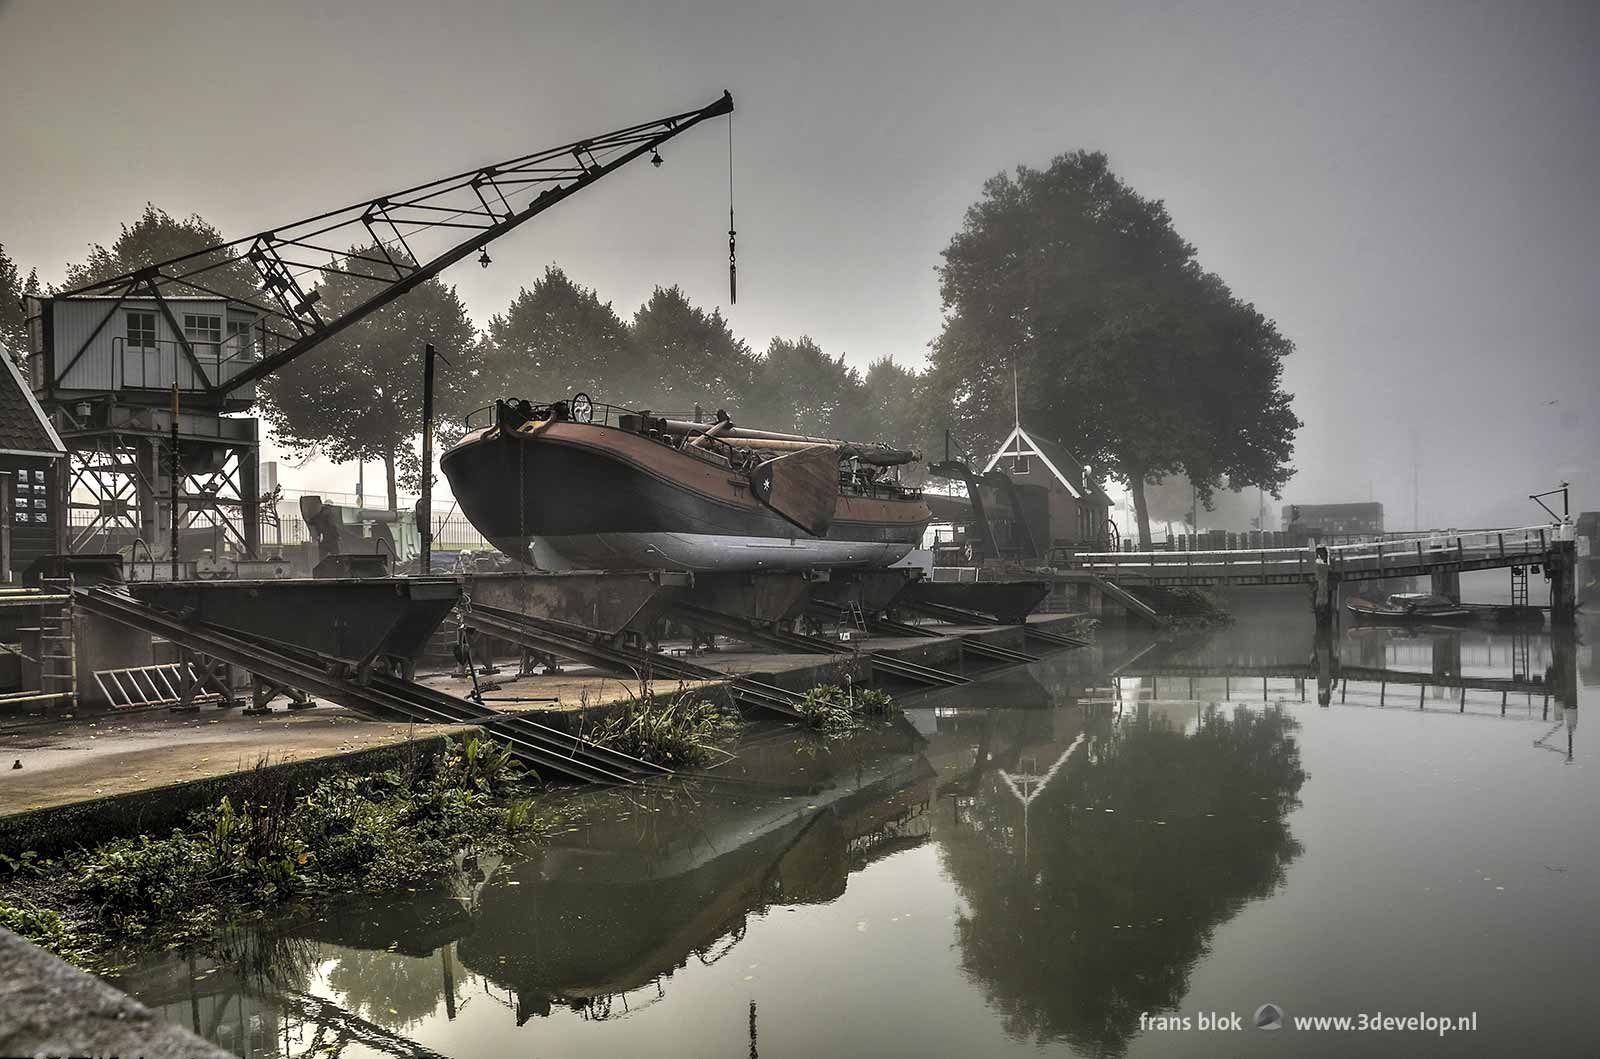 Little shipyard between Boompjes and Old Harbour in Rotterdam, on a day with patches of fog rolling into the city from the river